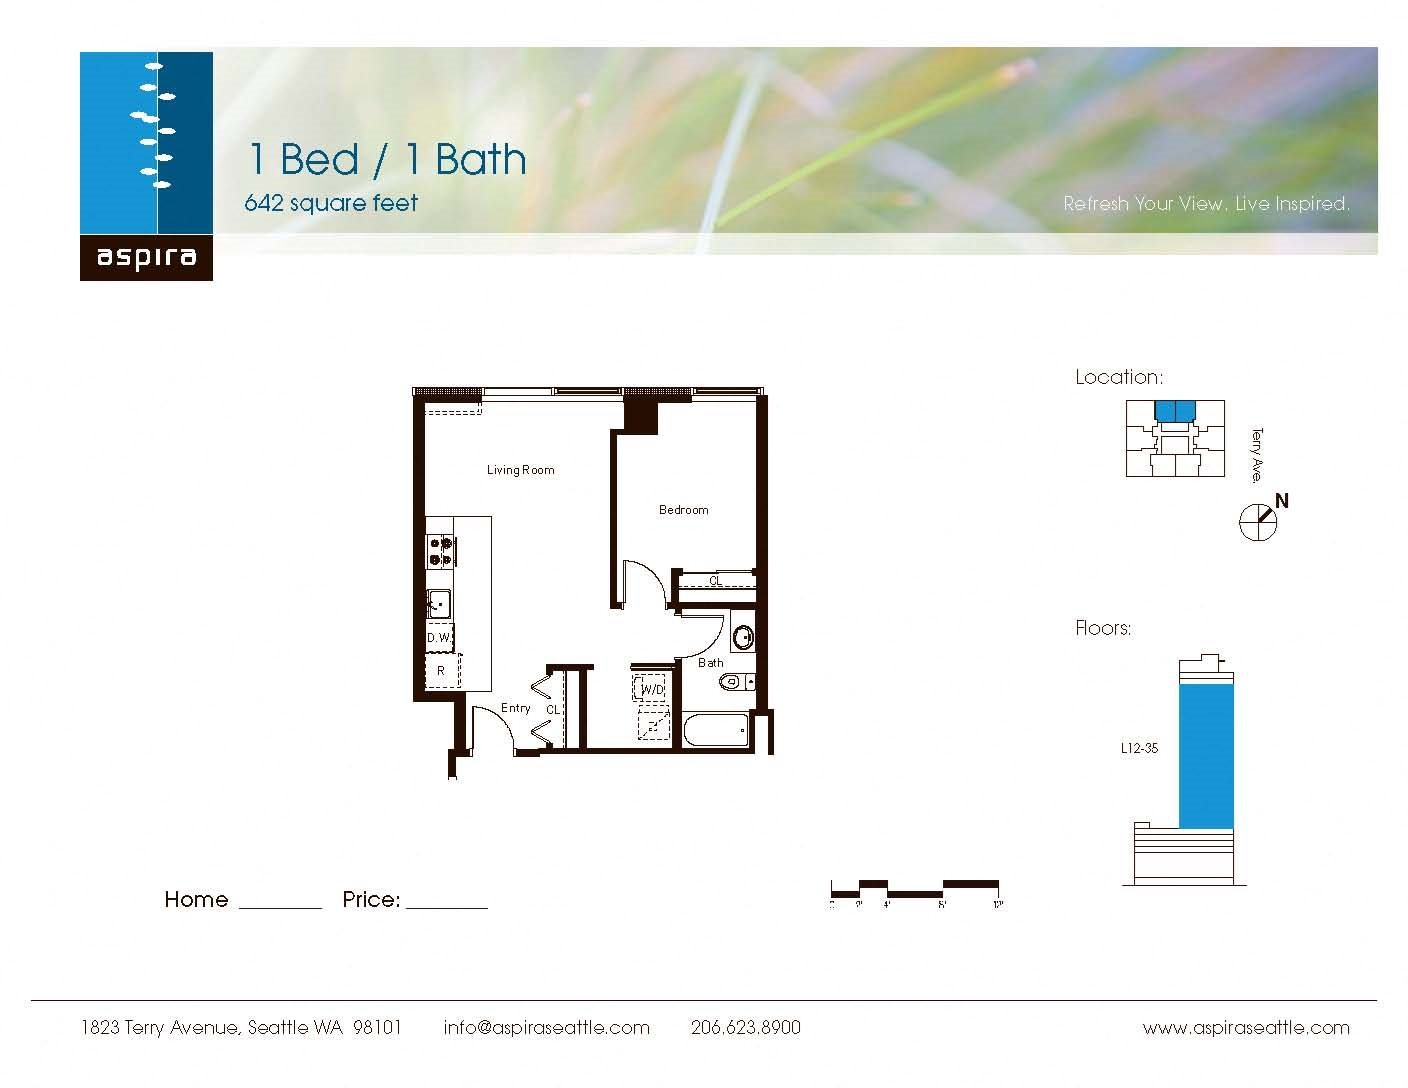 1 Bedroom 1 Bathroom 642 Floor Plan 12